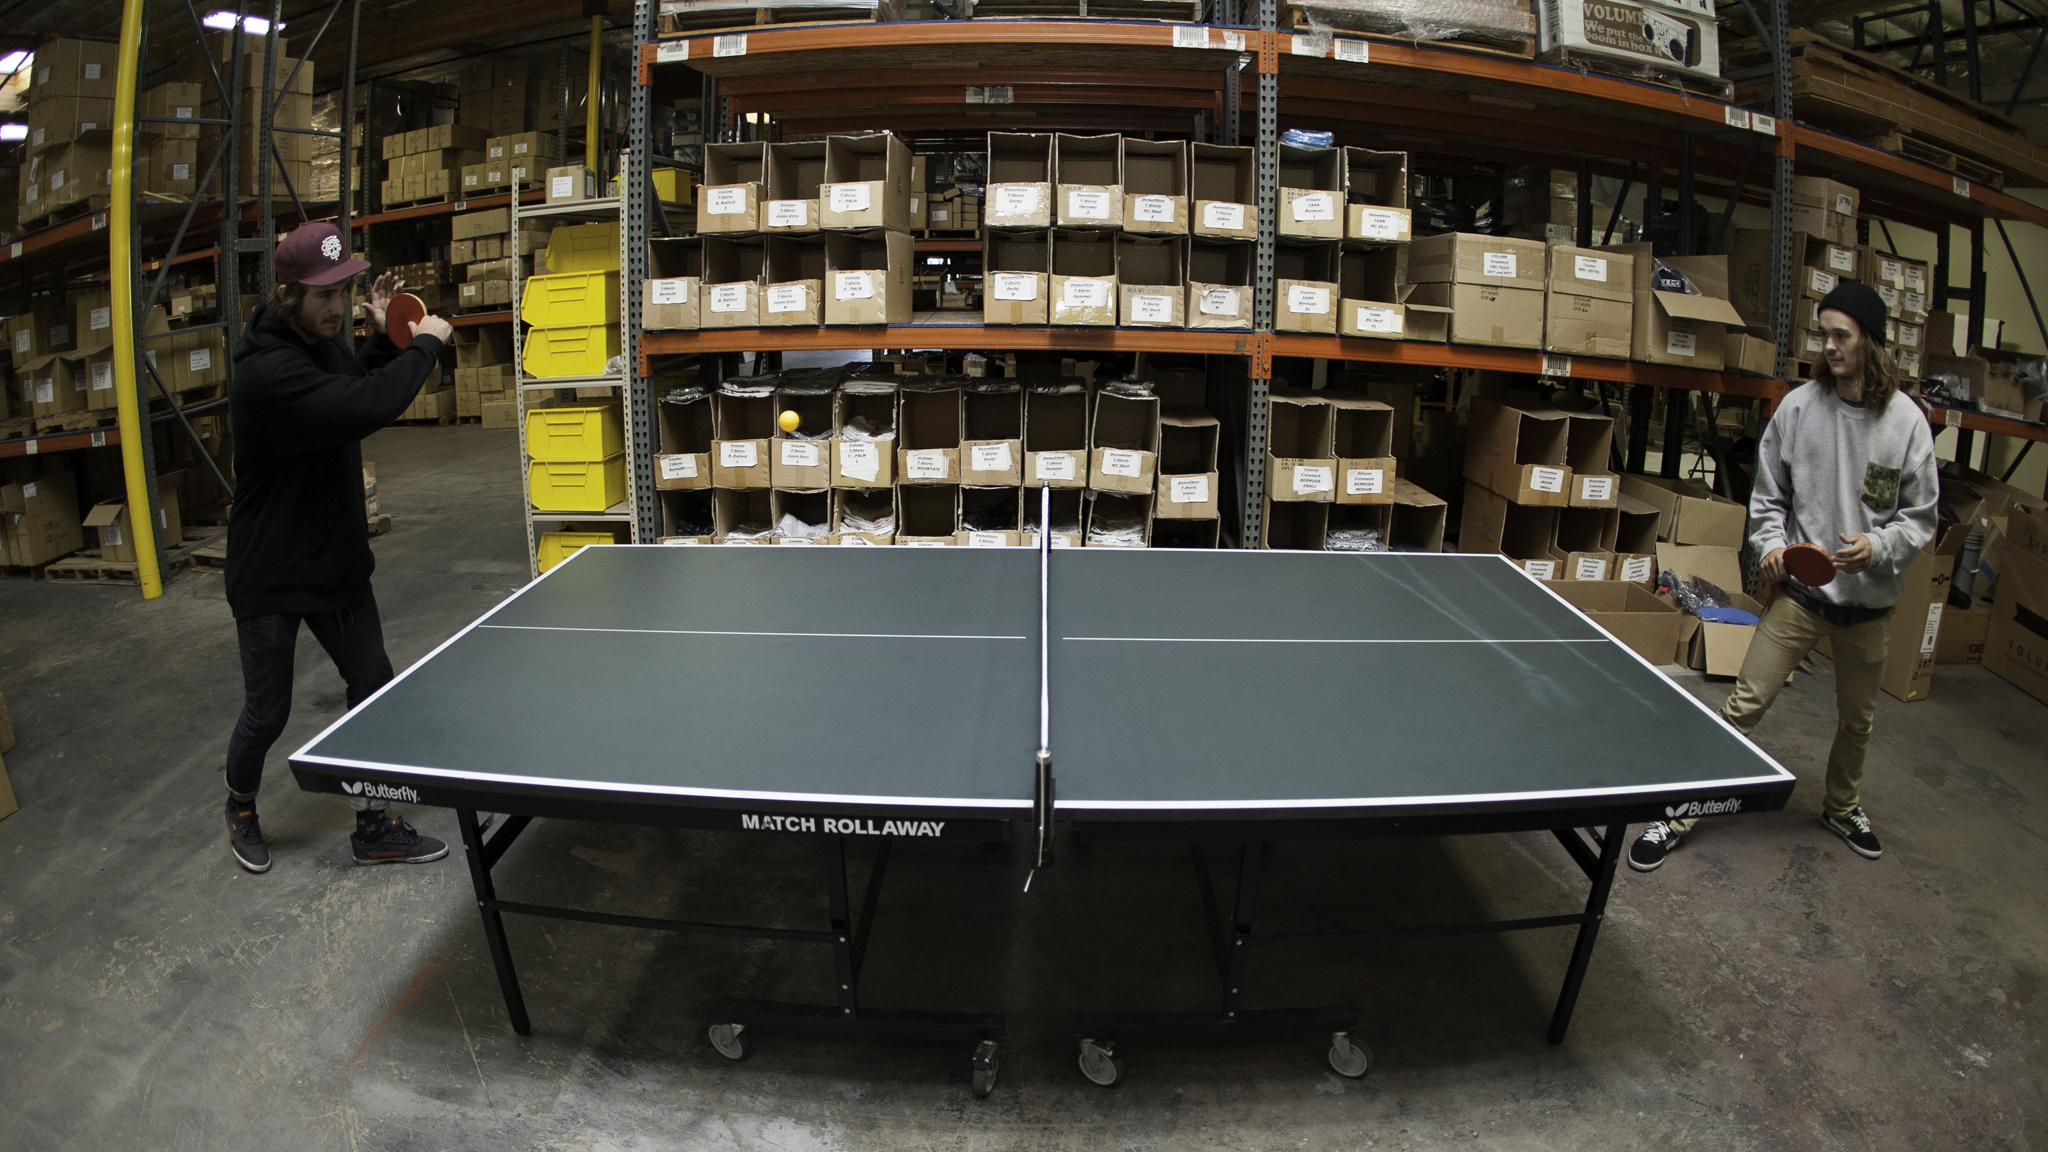 Ping Pong session